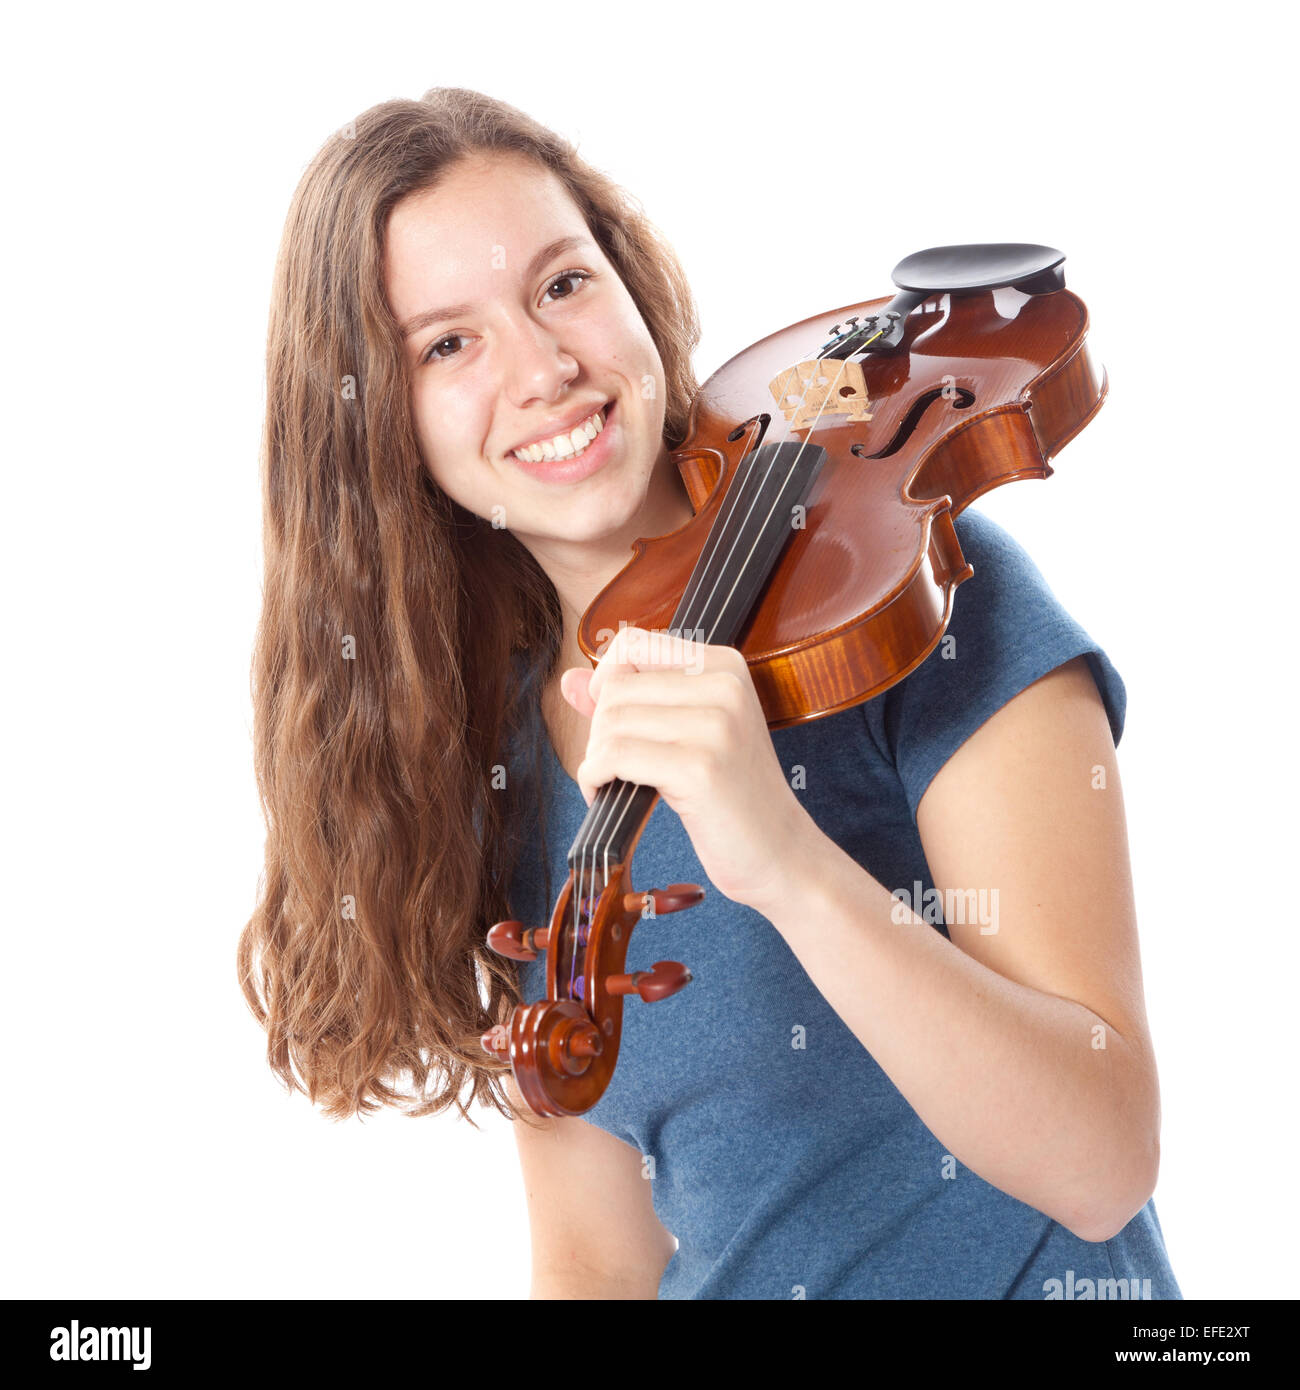 teen brunette  with violin on shoulder in studio against white background - Stock Image